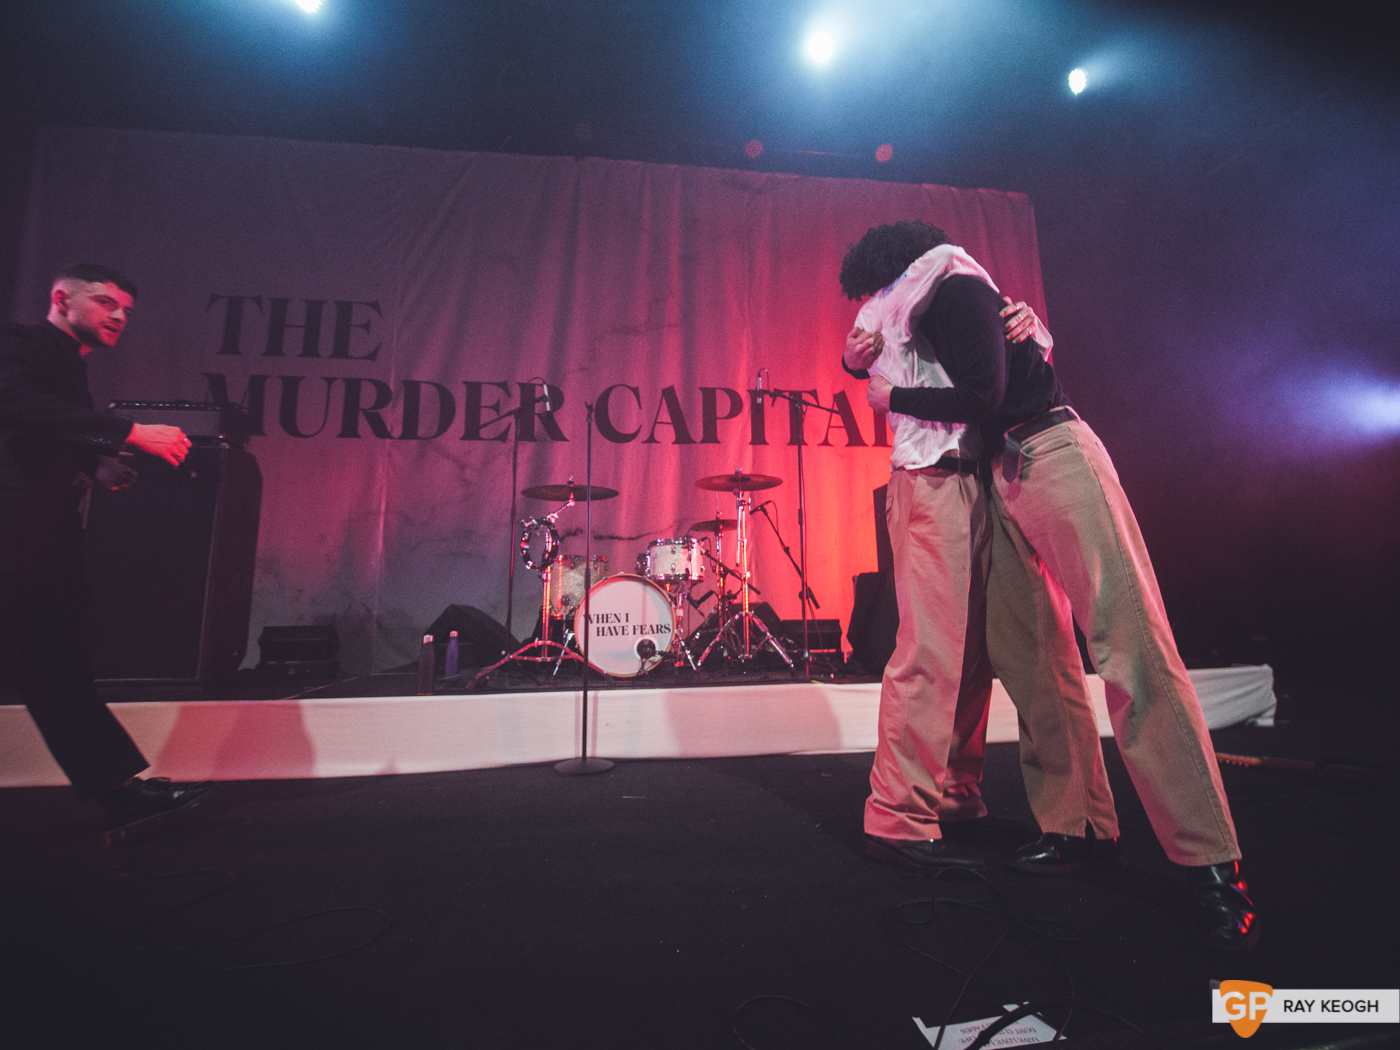 The Murder Capital – Photo by Ray Keogh